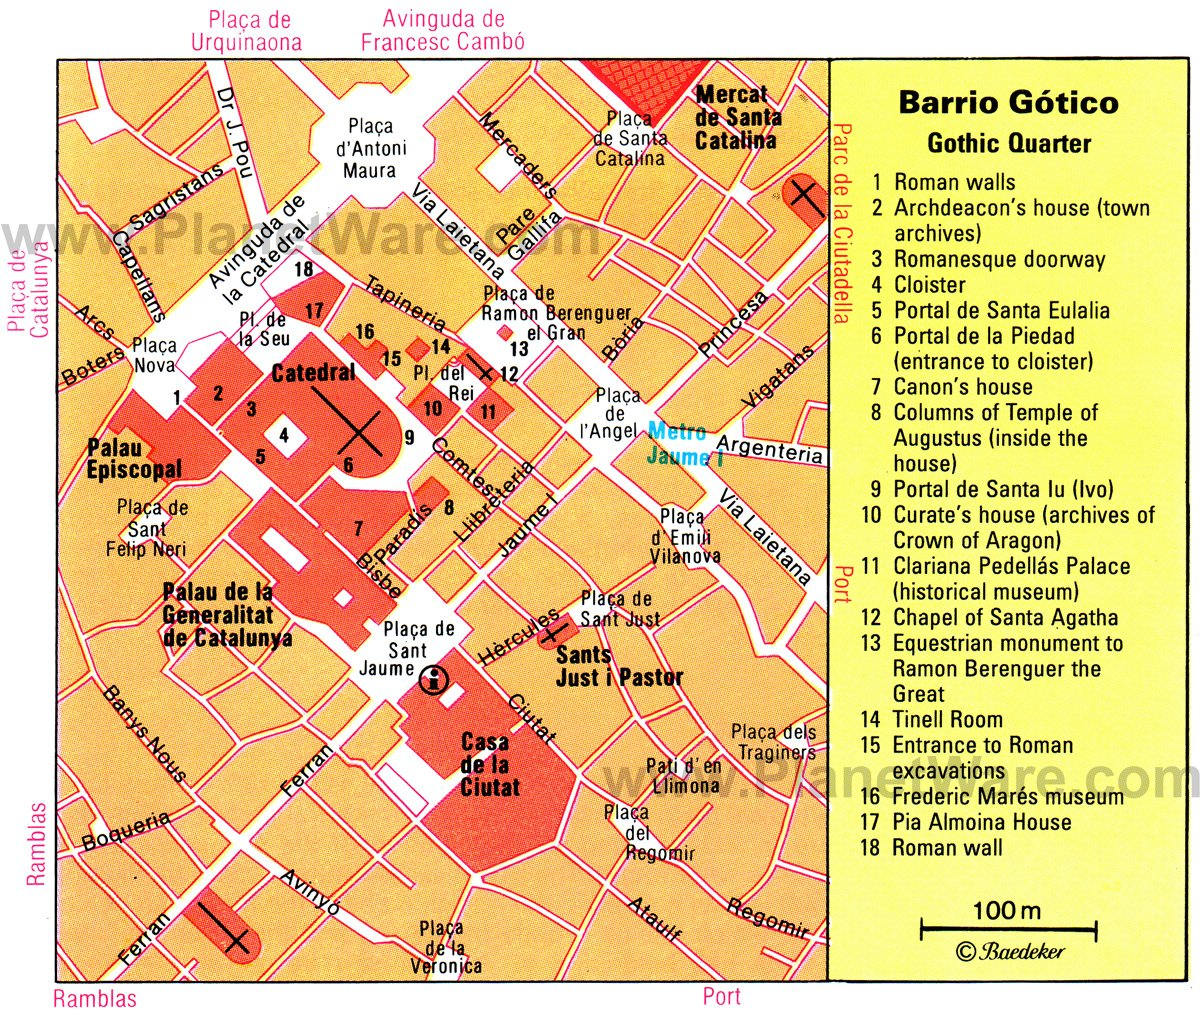 Barcelona - Gothic Quarter map - Tourist attractions